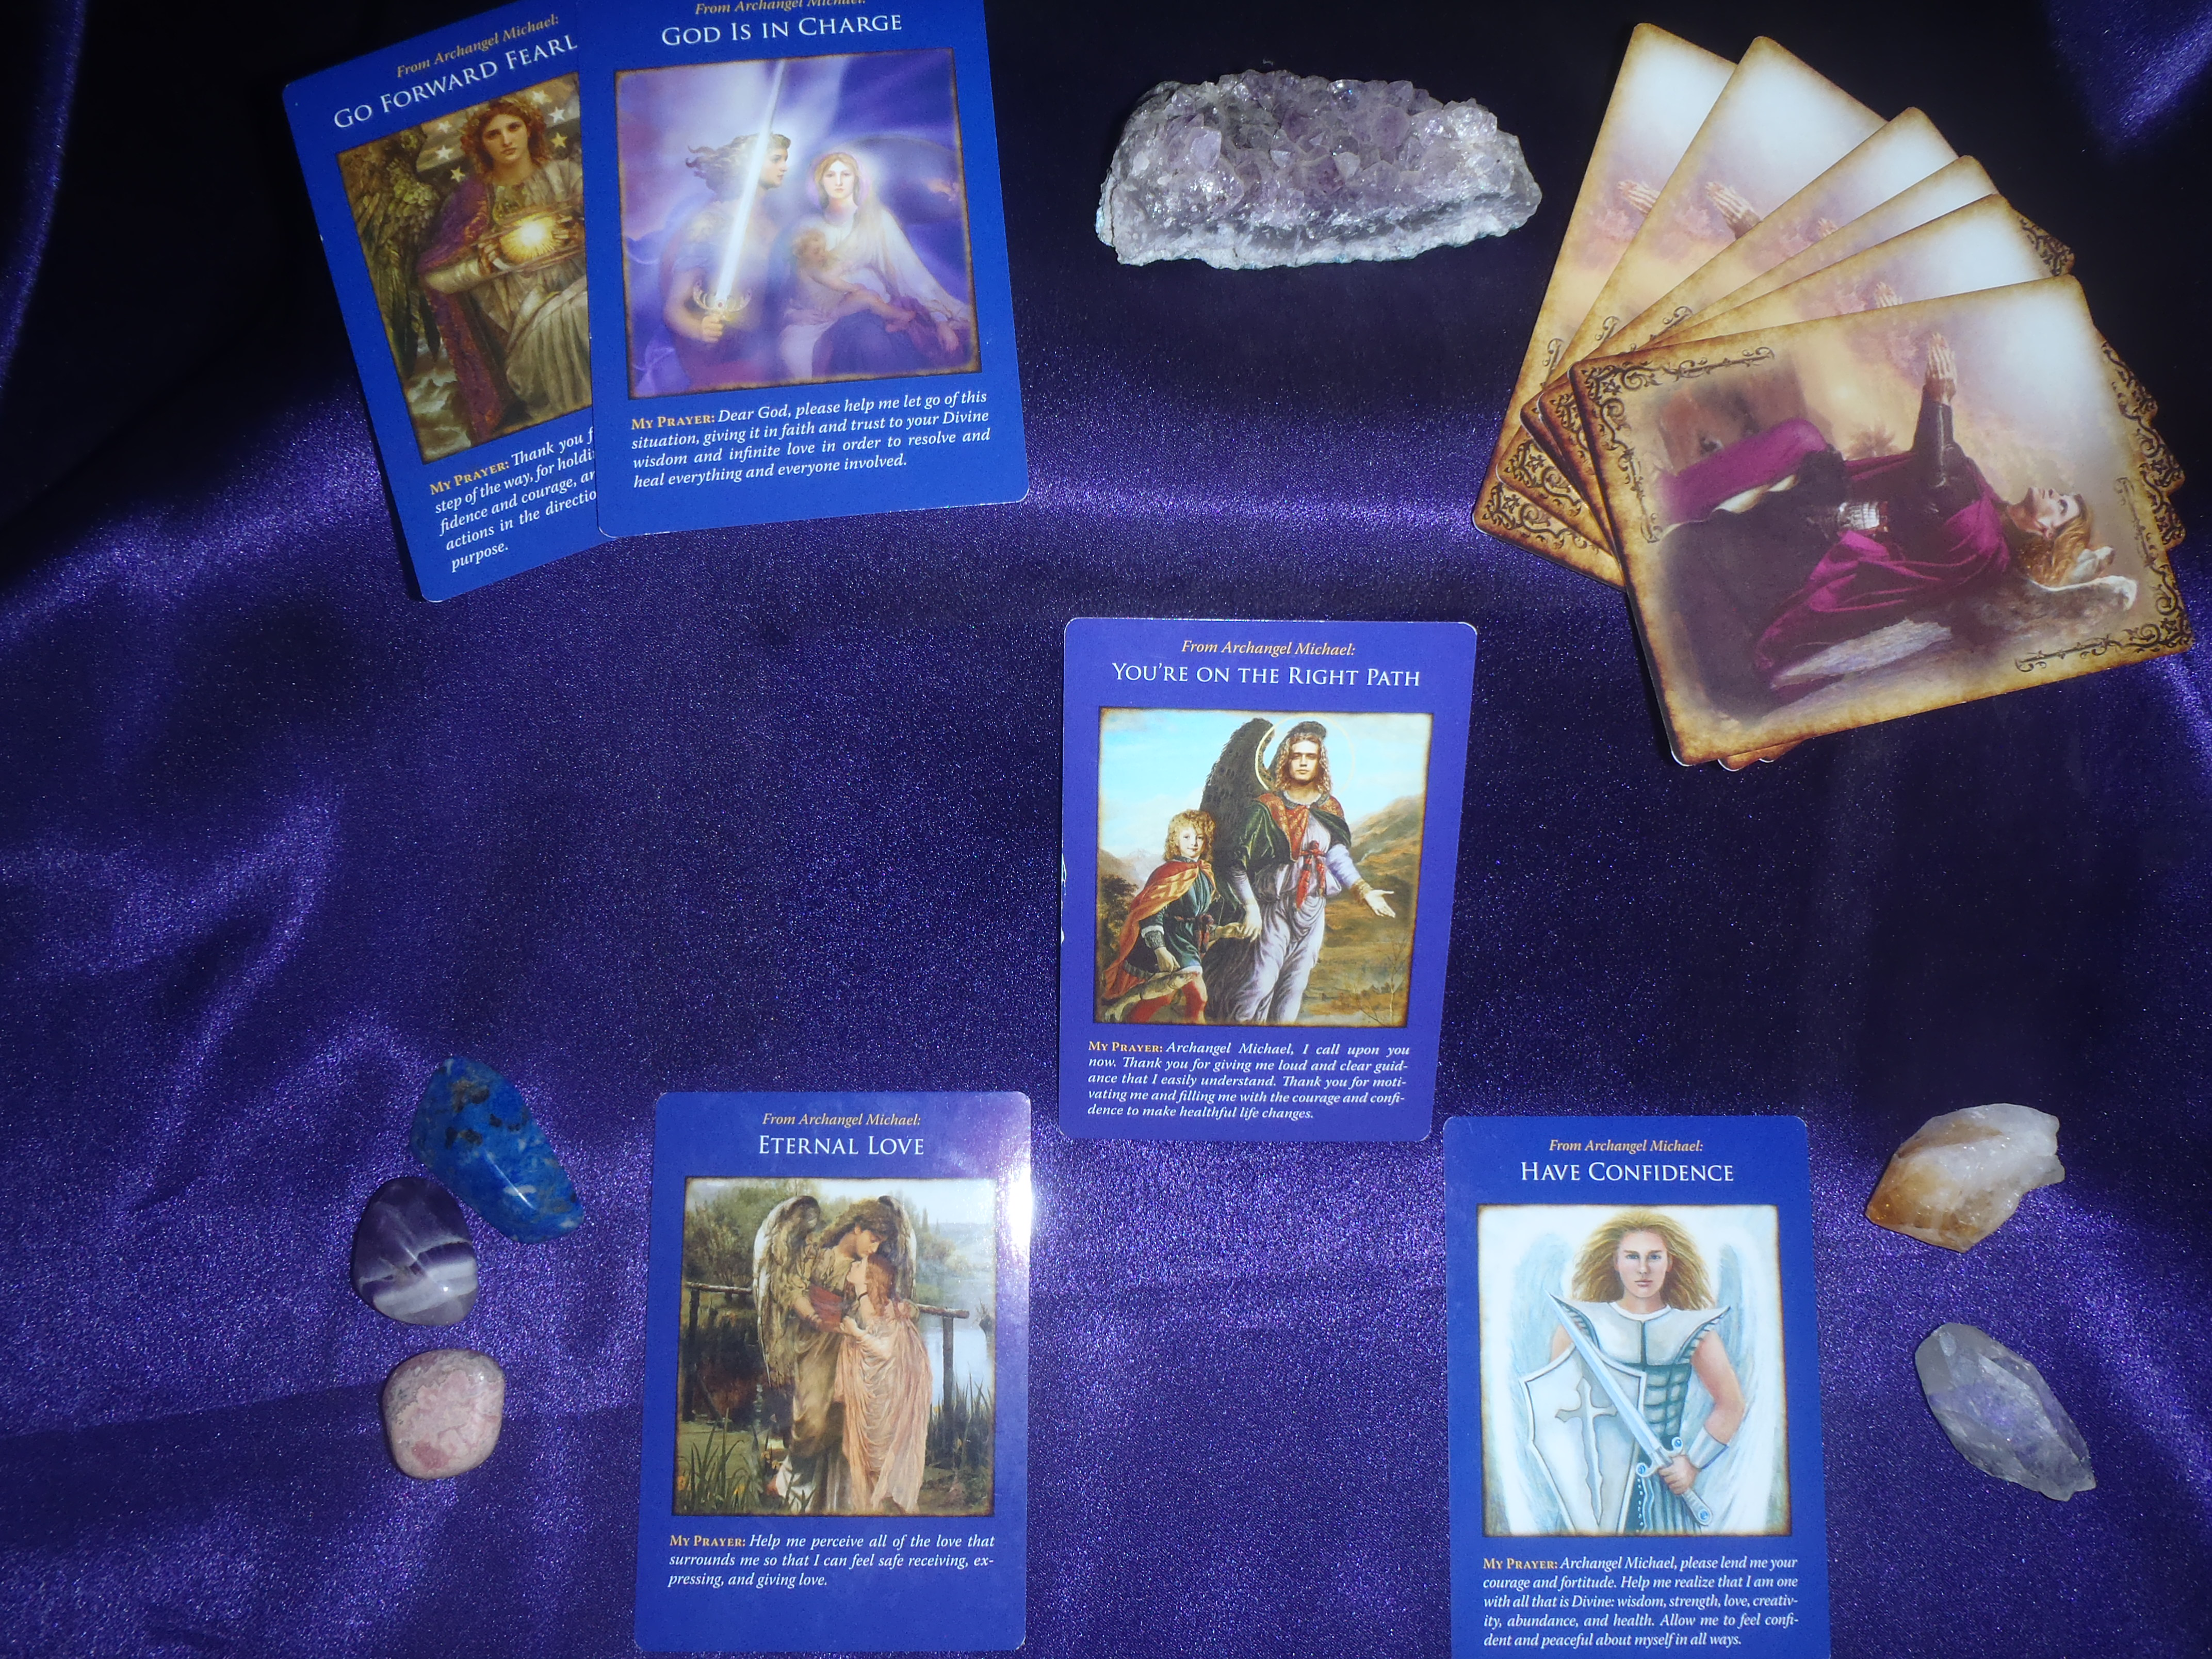 online and face to face tarot readings,face to face tarot readings,online tarot readings,many spiritual aspects,my blog spiritual,psychic and empath,psychic tarot readings,reading tea leaves and palms,angel & oracle card readings,angel readings,oracle readings,am a natural healer